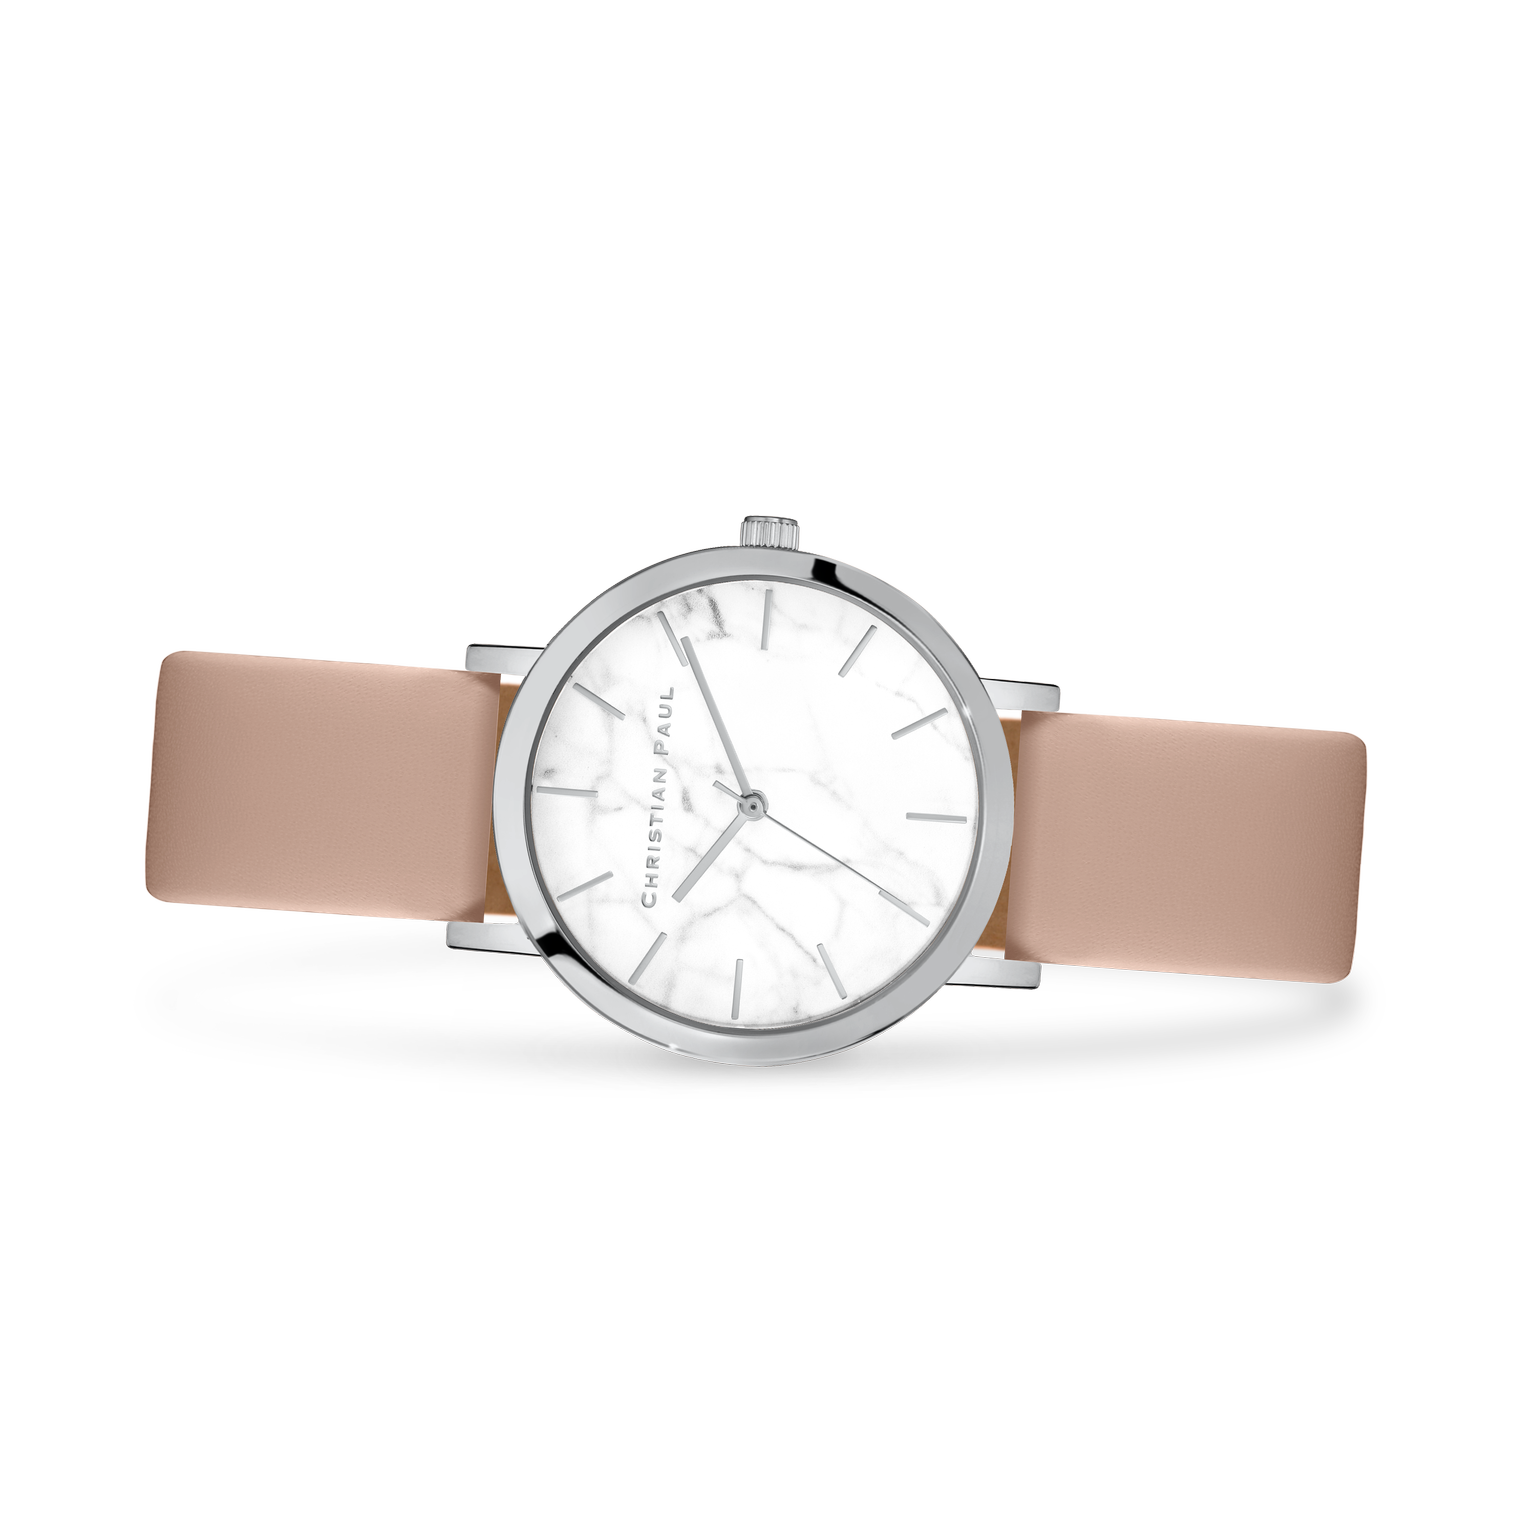 Luxury silver nude leather watch